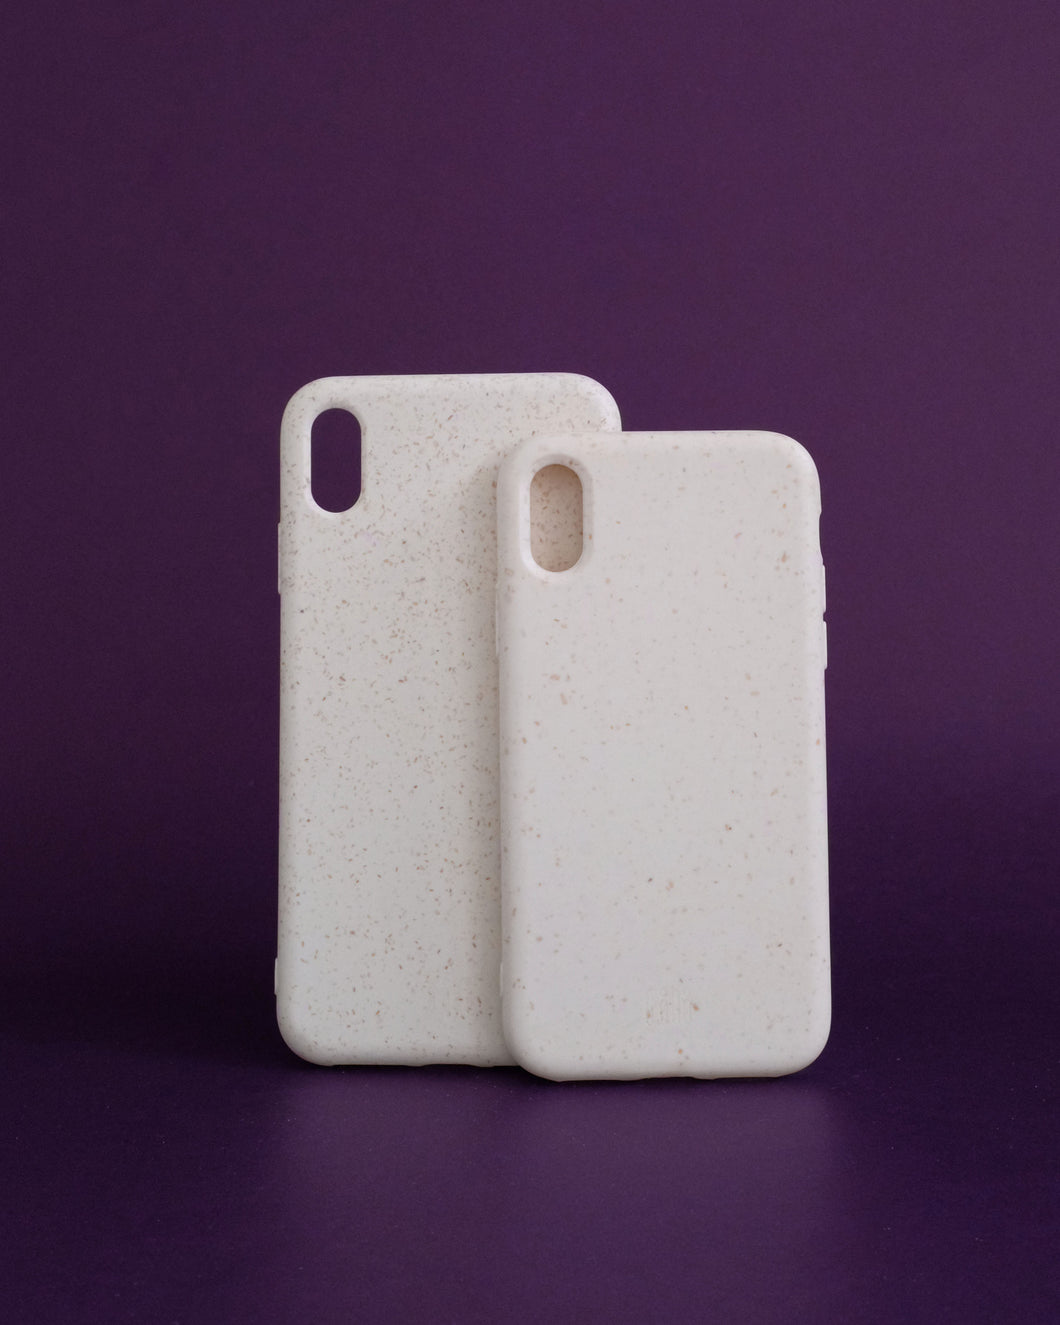 Fili Case Plant-based Smooth iPhone Case - Ivory - Loop.